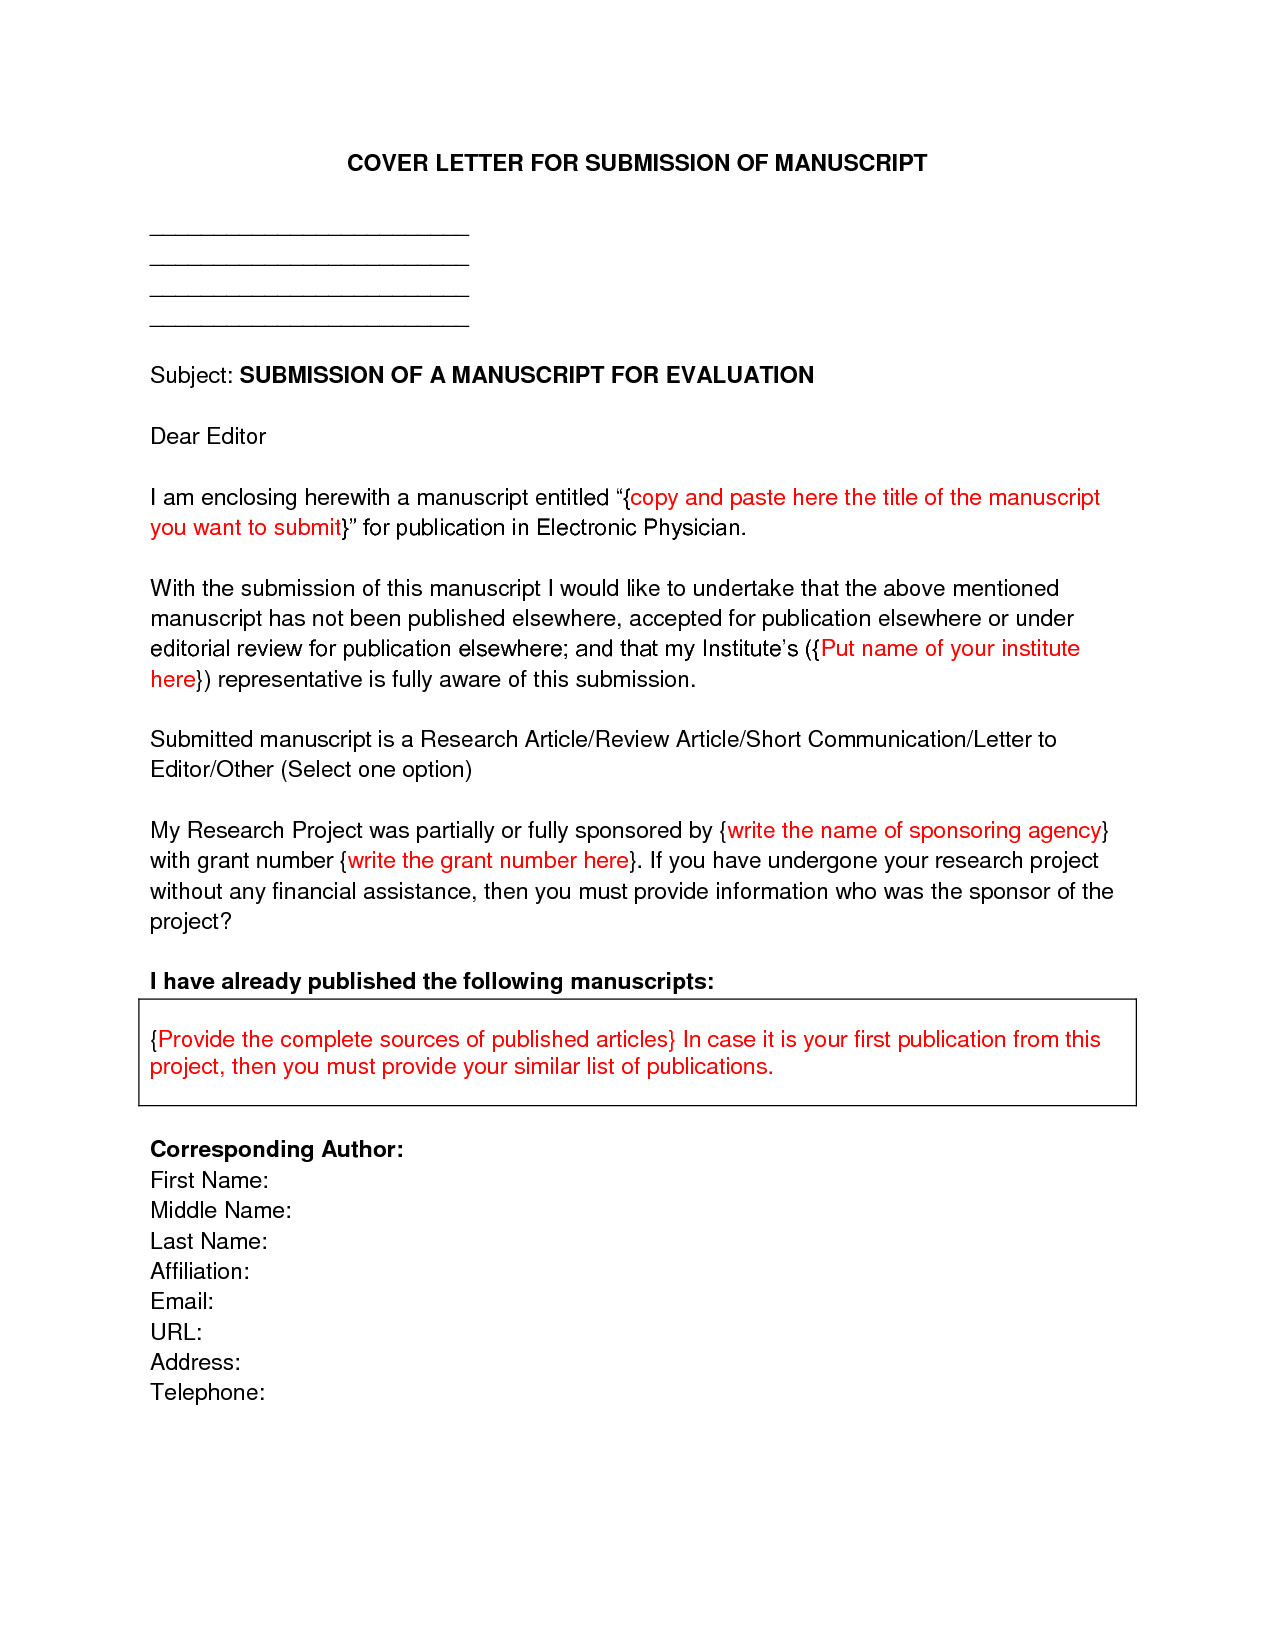 Cover Letter Sample for Submitting Manuscript Manuscript Cover Letter Sample Best Letter Sample